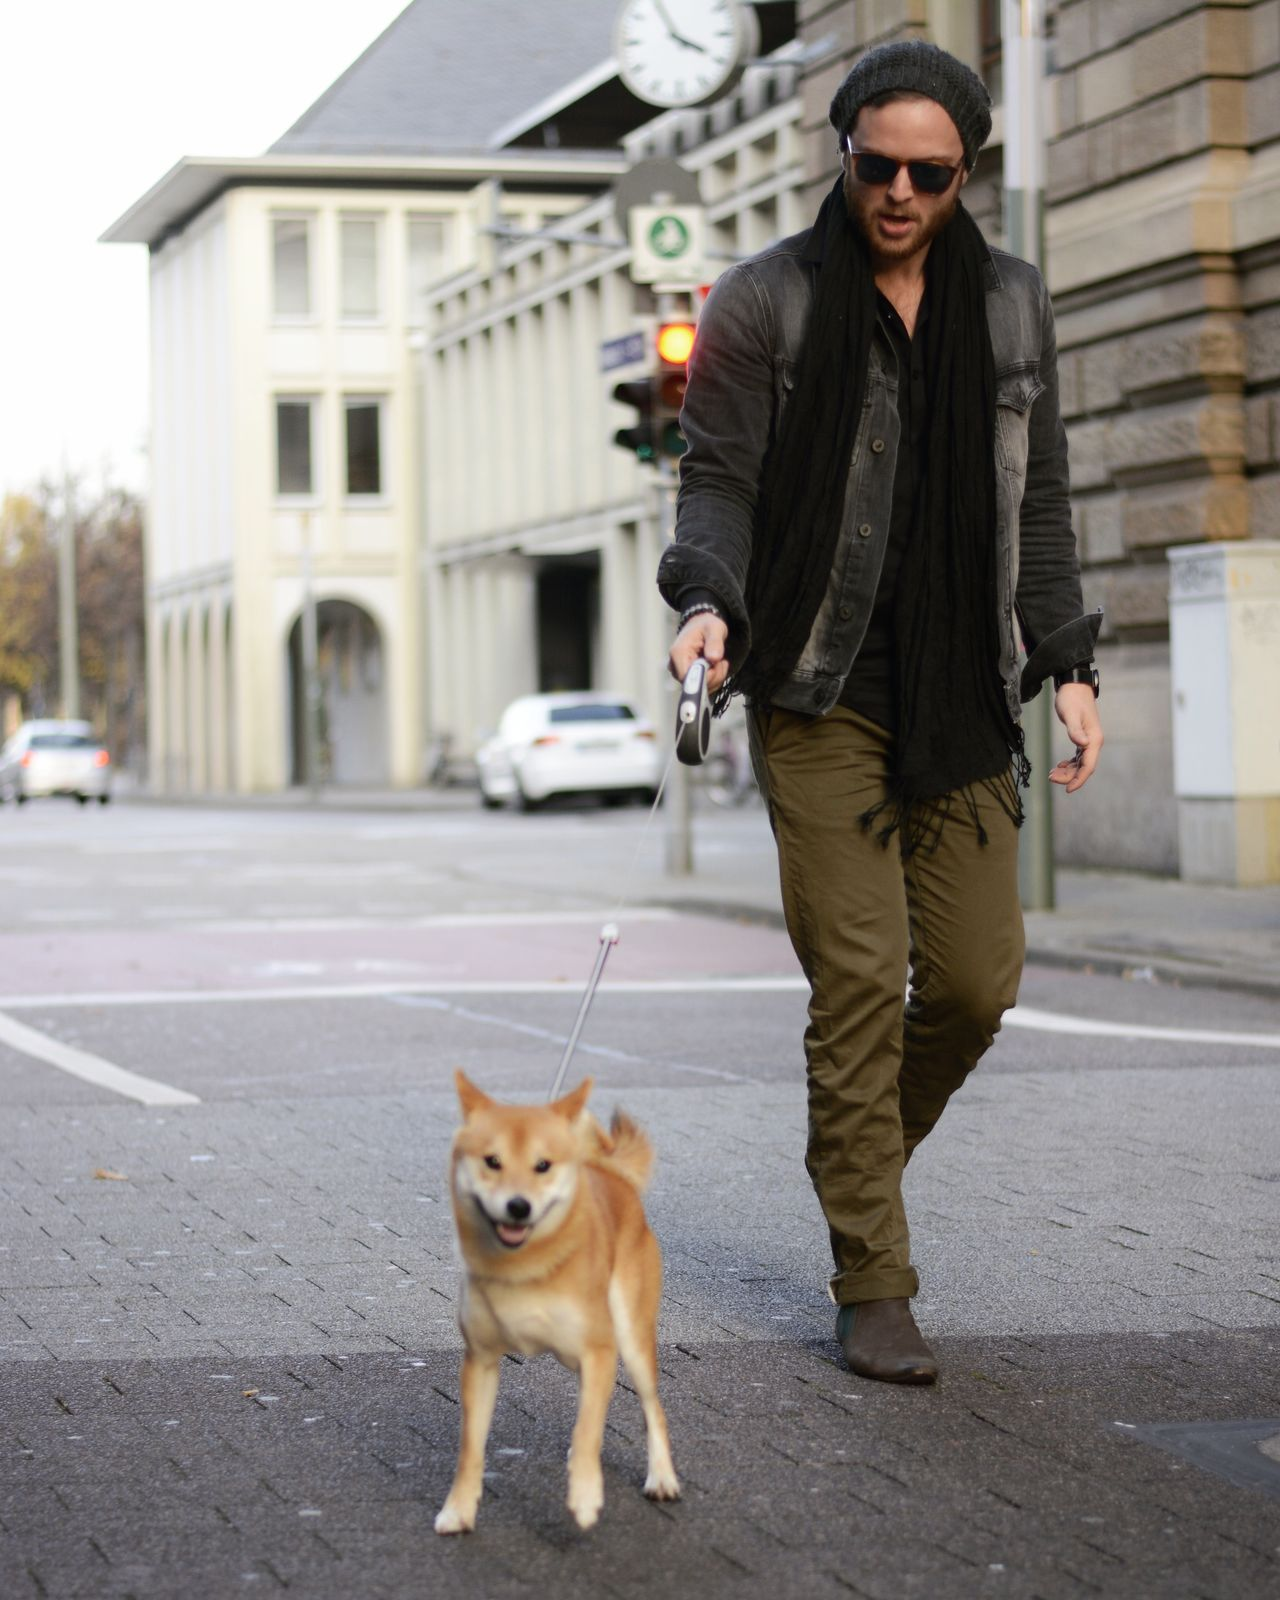 Shiba Inu Karlsruhe Walk Dog Humansbestfriend Mavi Lifestyle Persol Sunglasses Casual Goodlife Dogandman Karlsruhe 0721 Germany Deutschland Outfit Herrenmode Menswear Style Pets One Animal Full Length One Person One Man Only